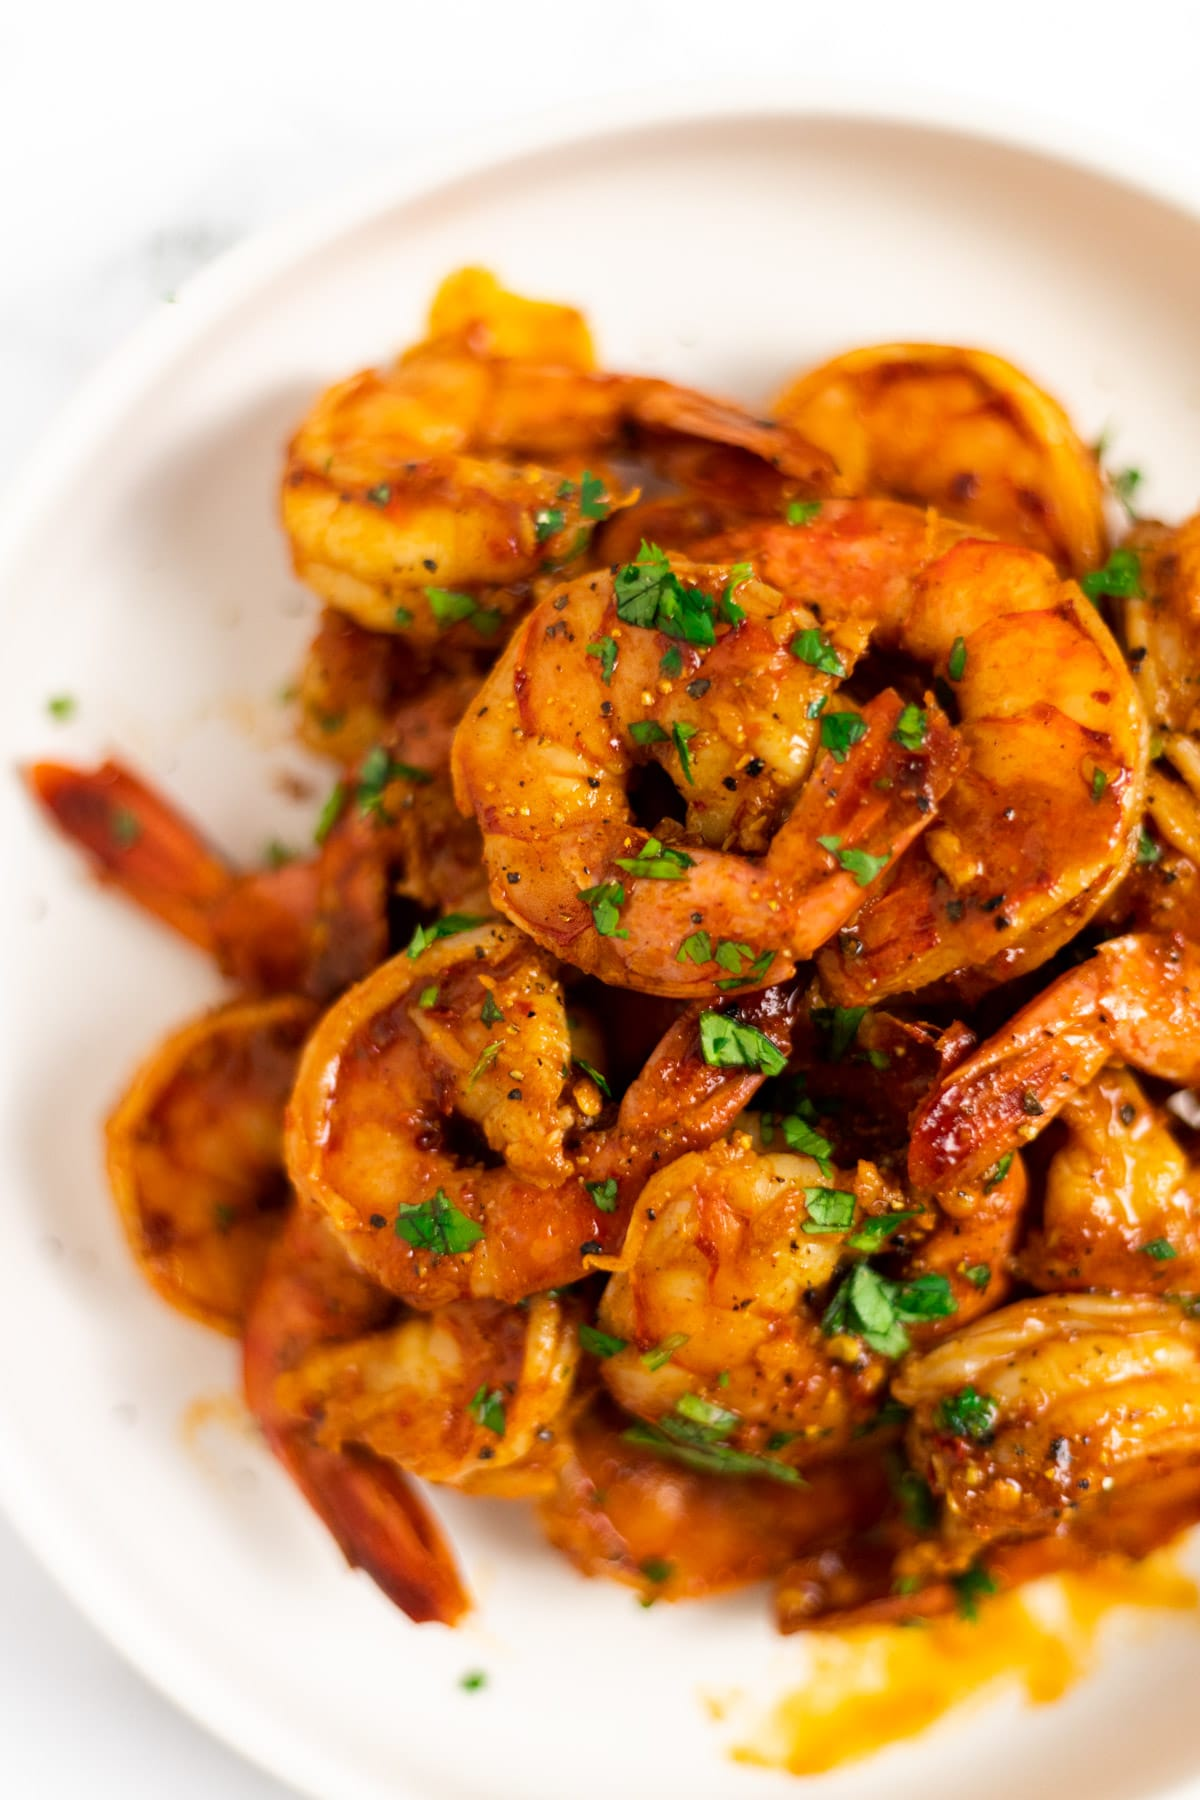 A side view of a bowl of chili lime shrimp.